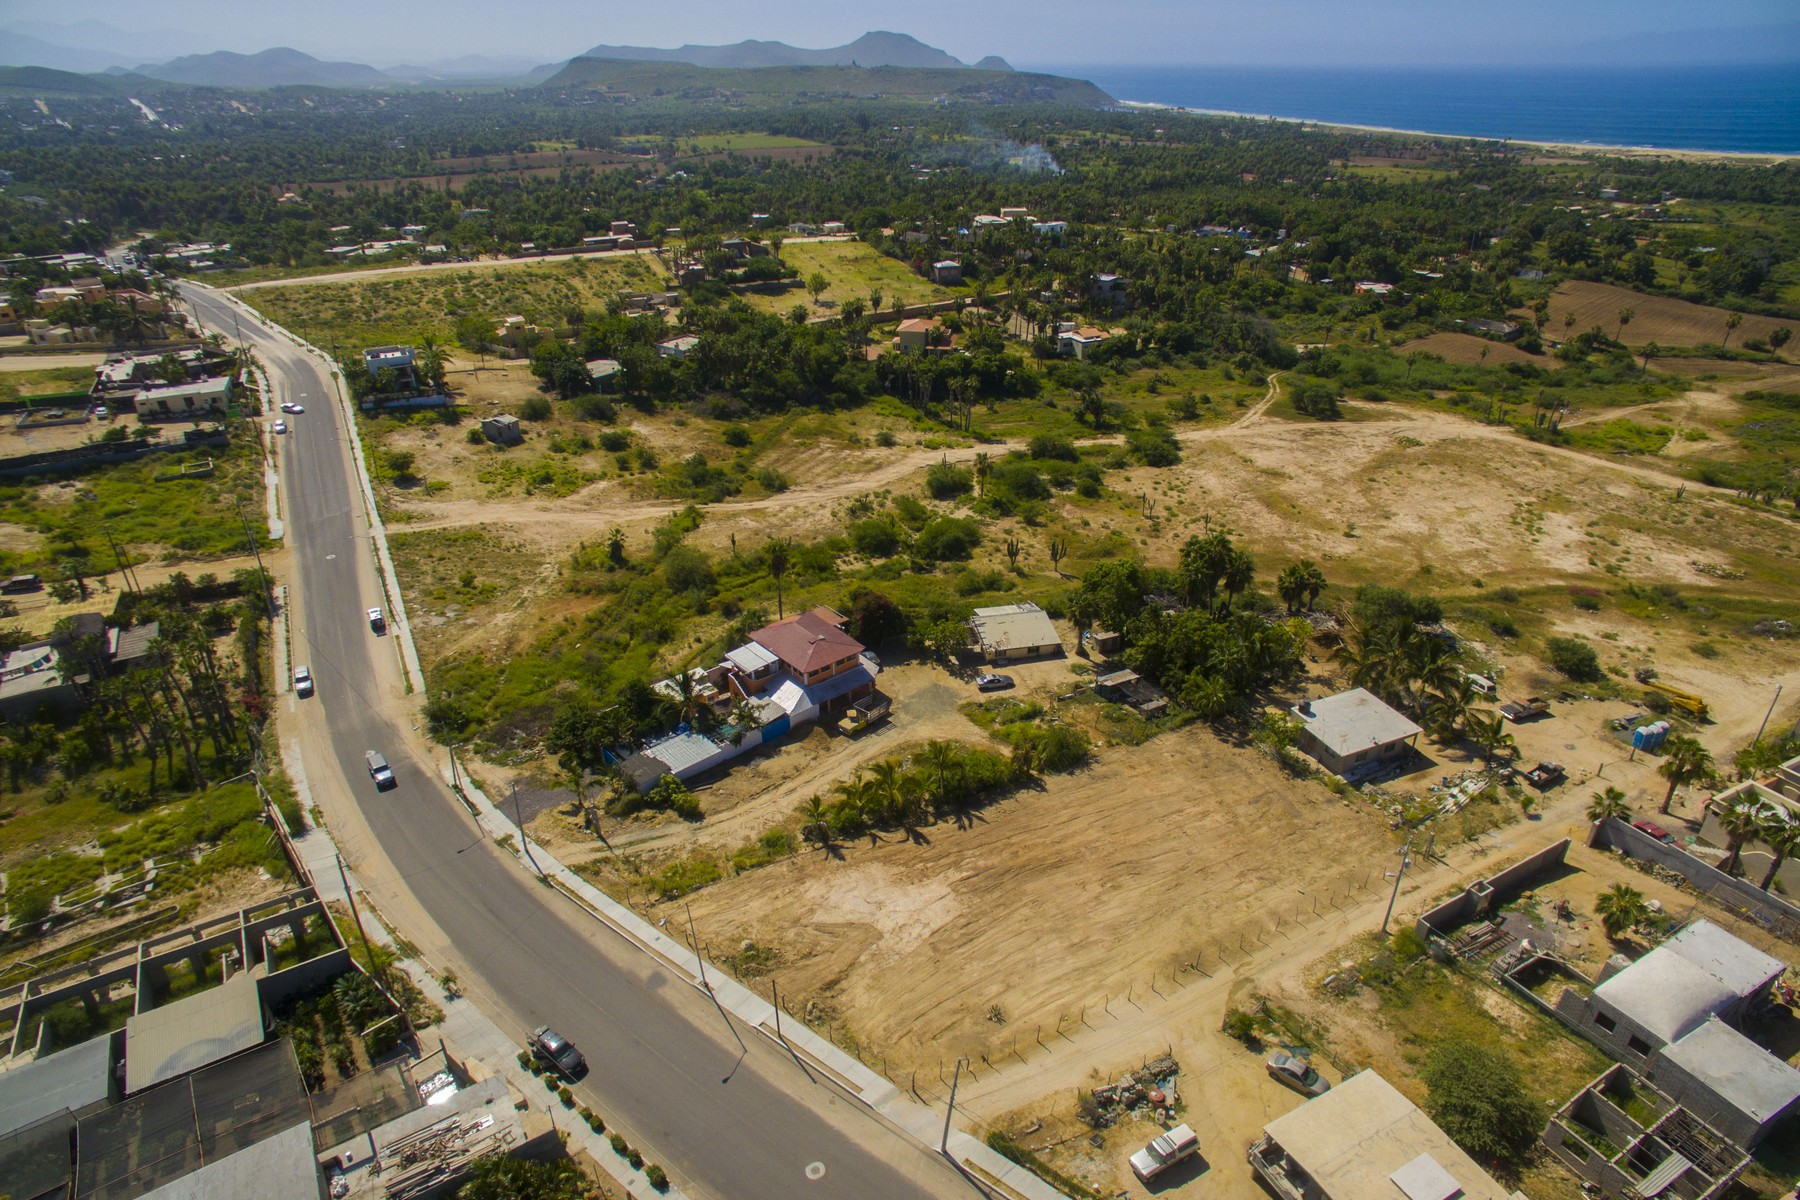 Land for Sale at Lote Mercado Todos Santos Las Brisas Todos Santos, 23300 Mexico